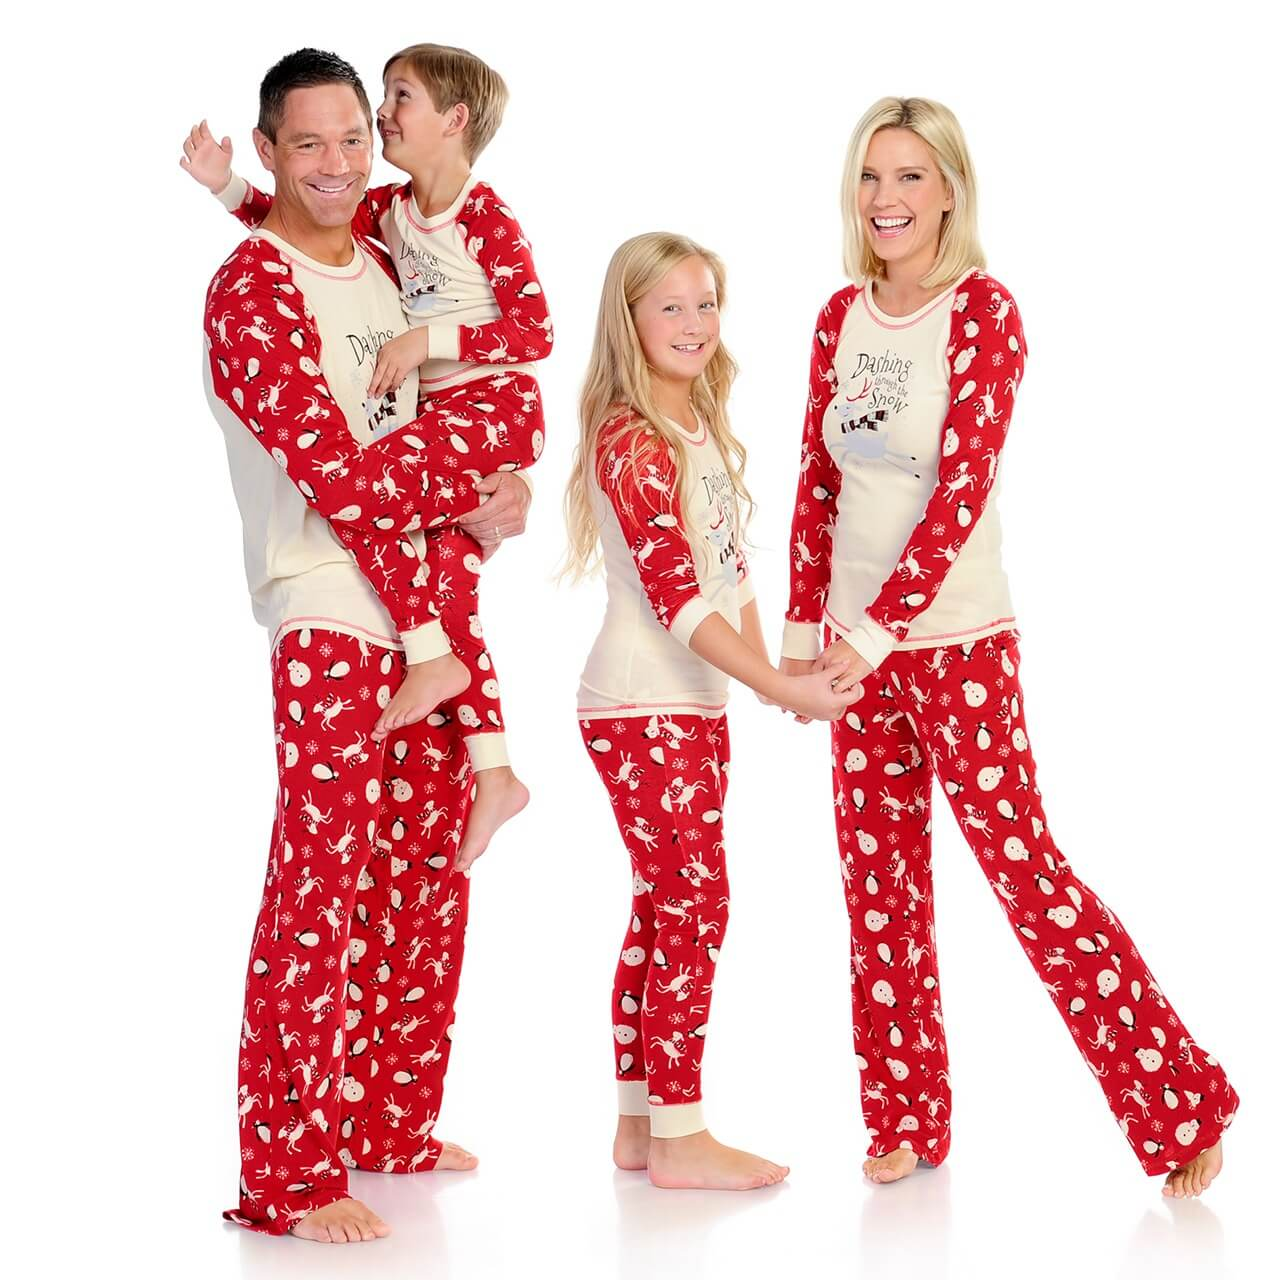 best matching family pajama selection